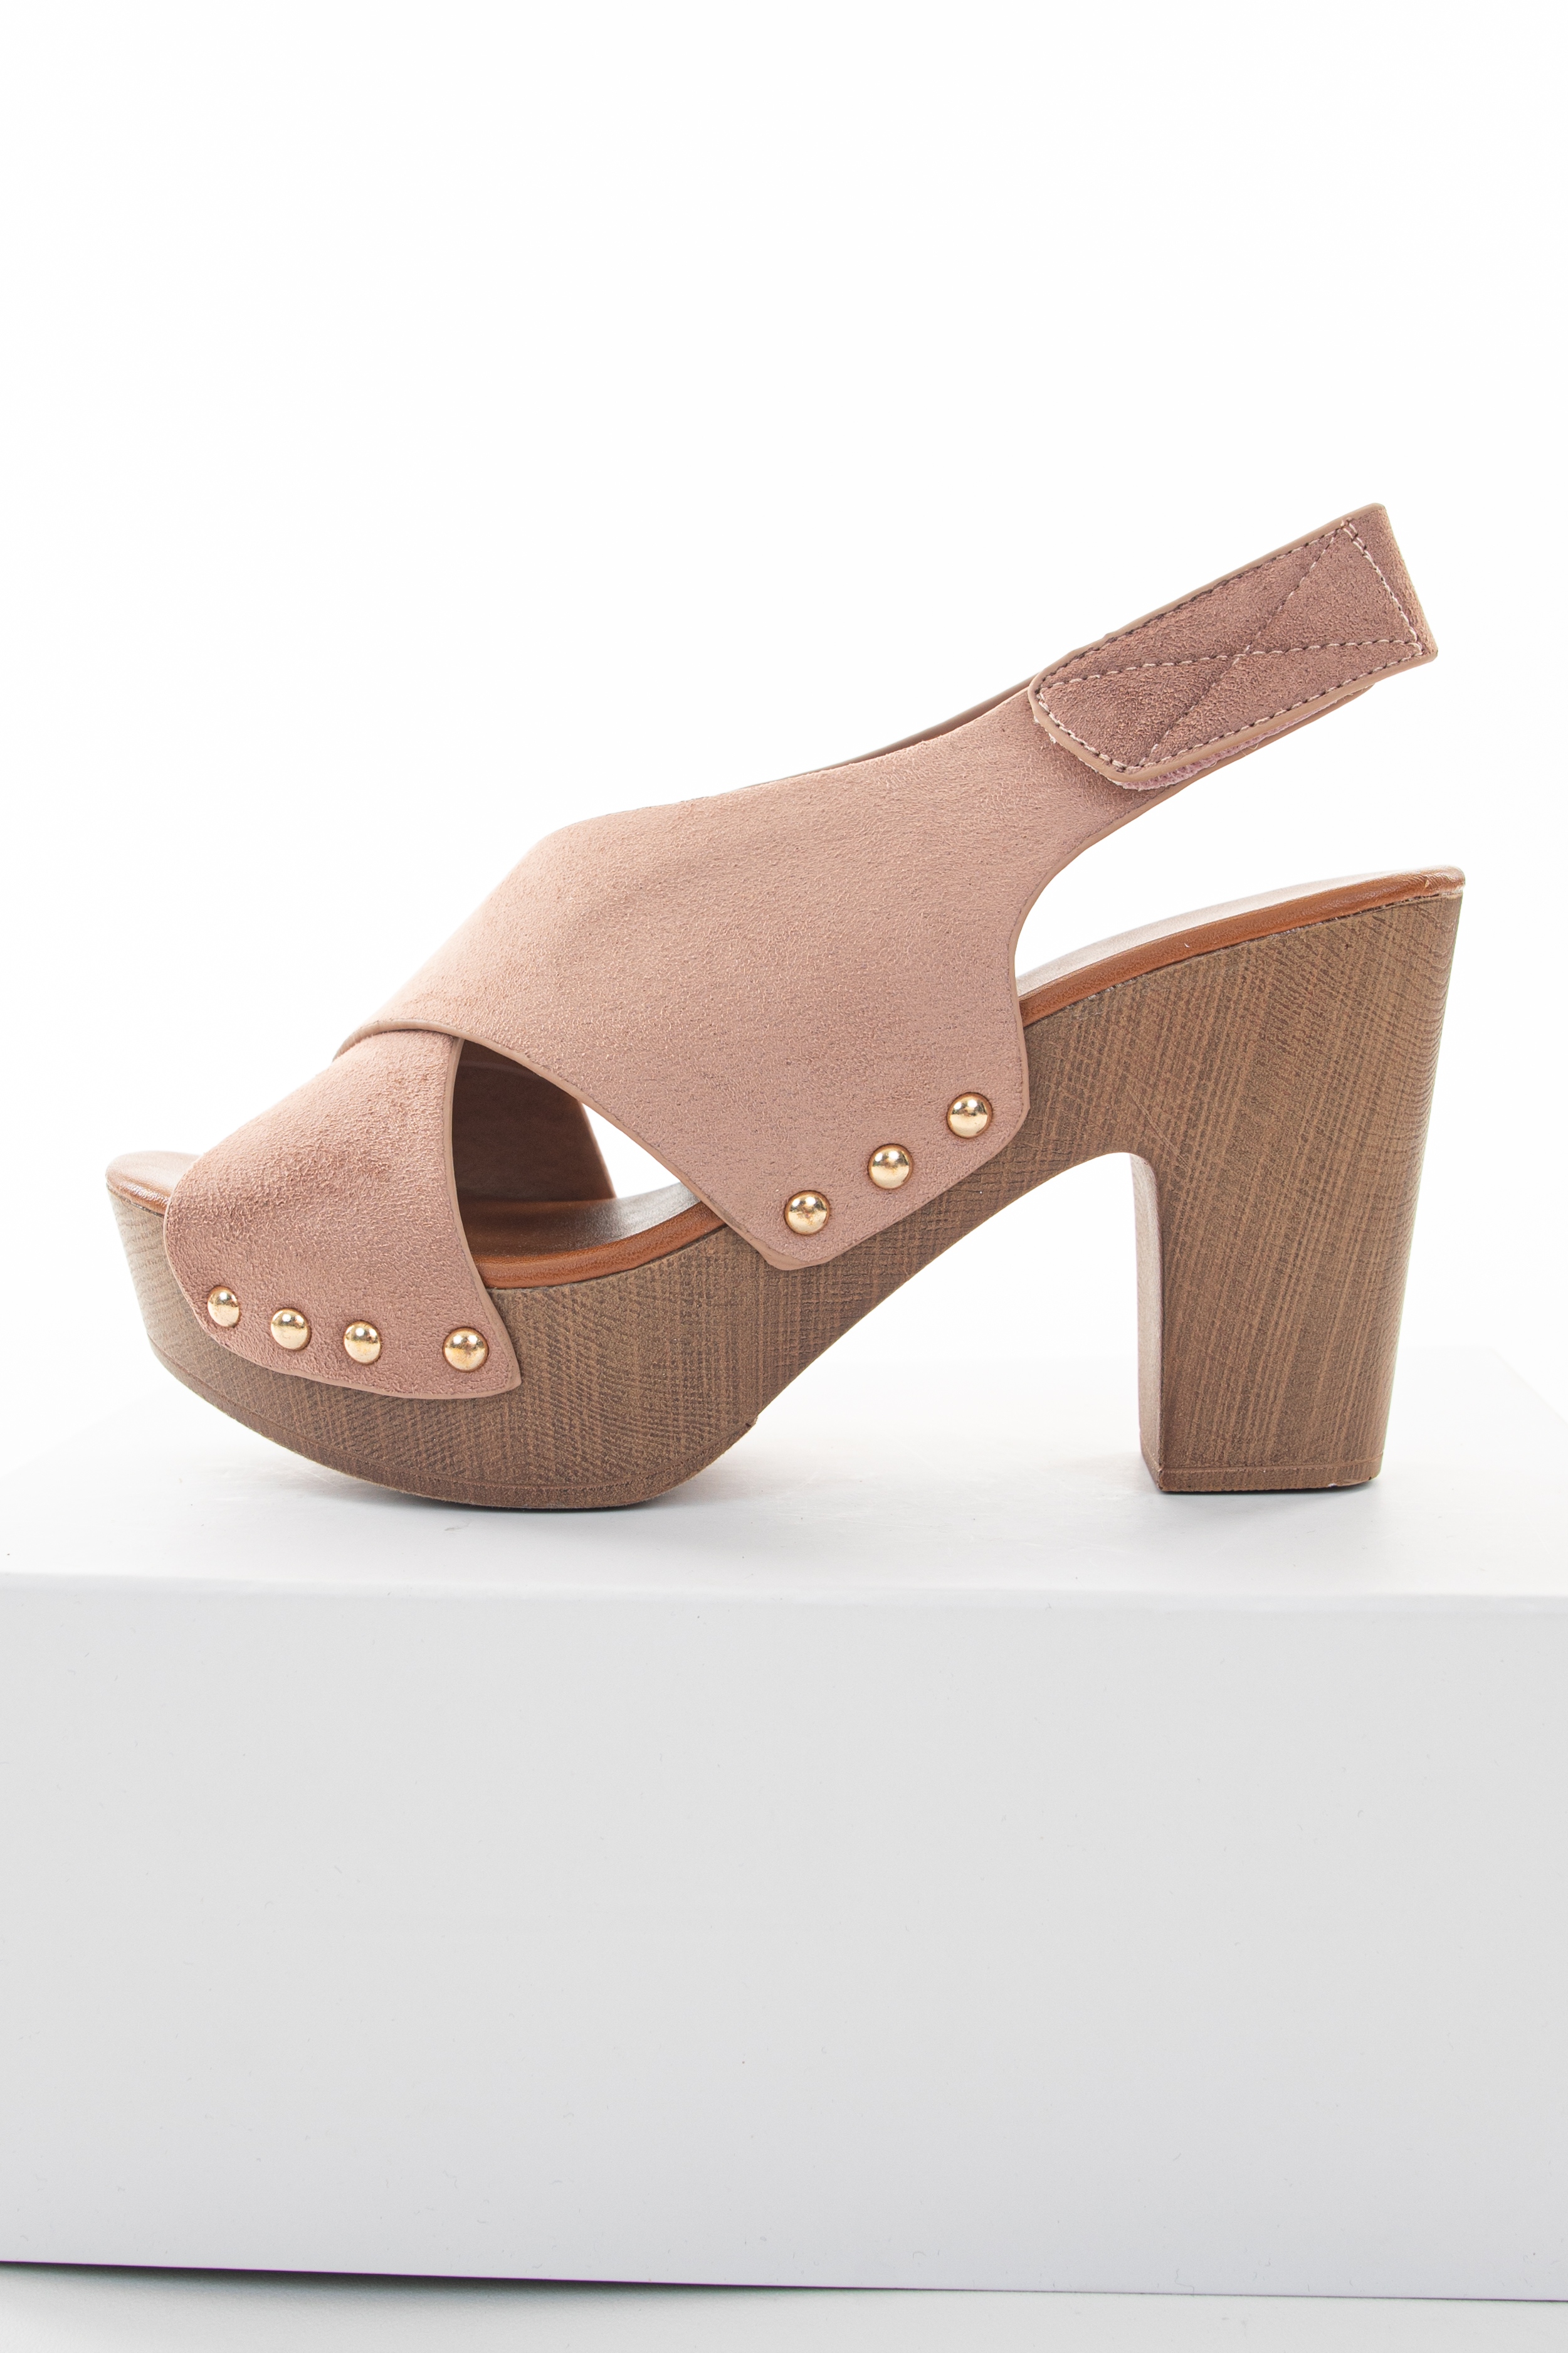 Blush Pink Suede Open Toed Heels with Gold Stud Details